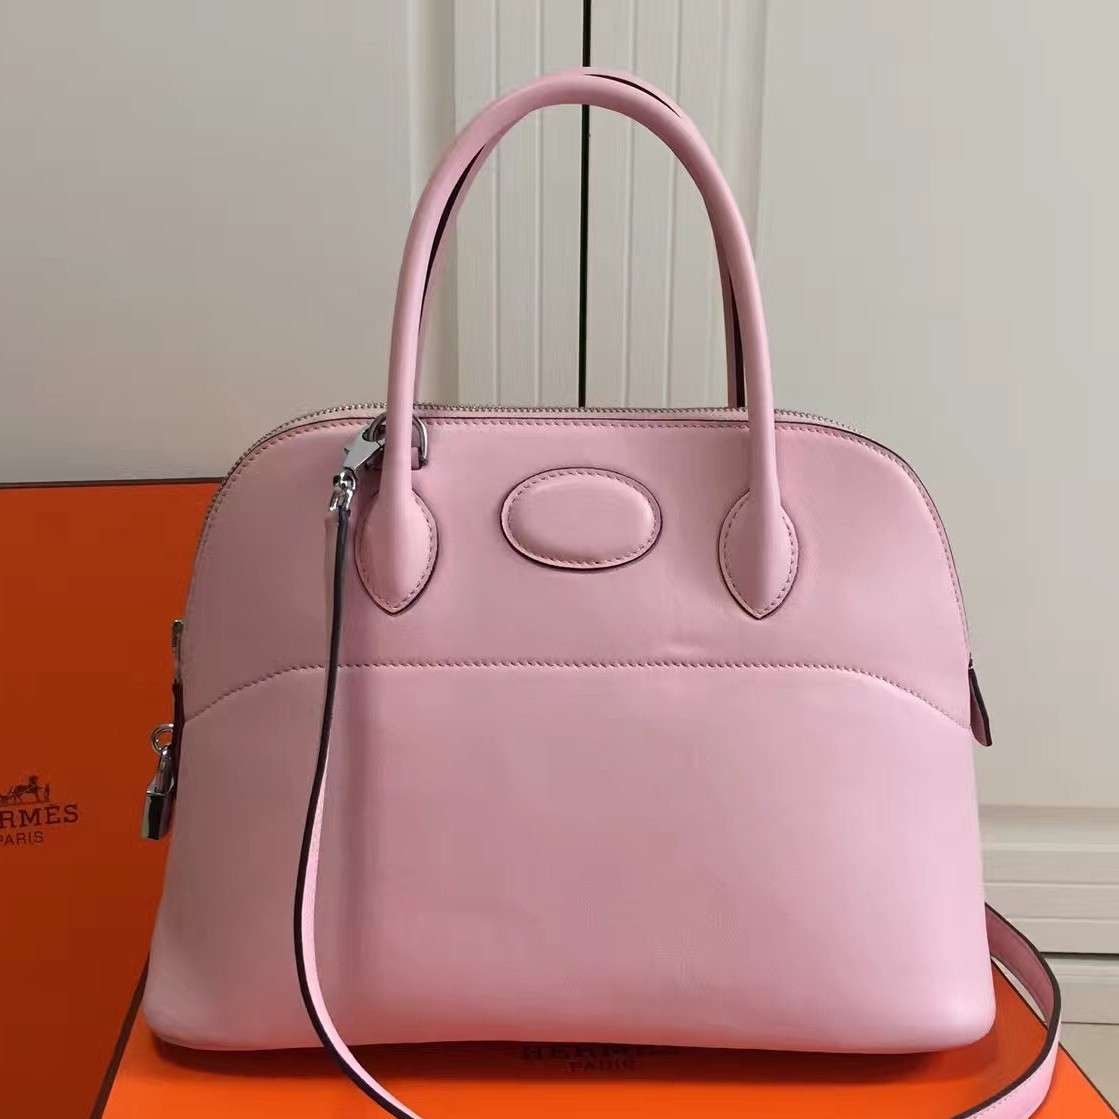 Replica Perfect Hermes Bolide 31cm Bag In Pink Swift Leather